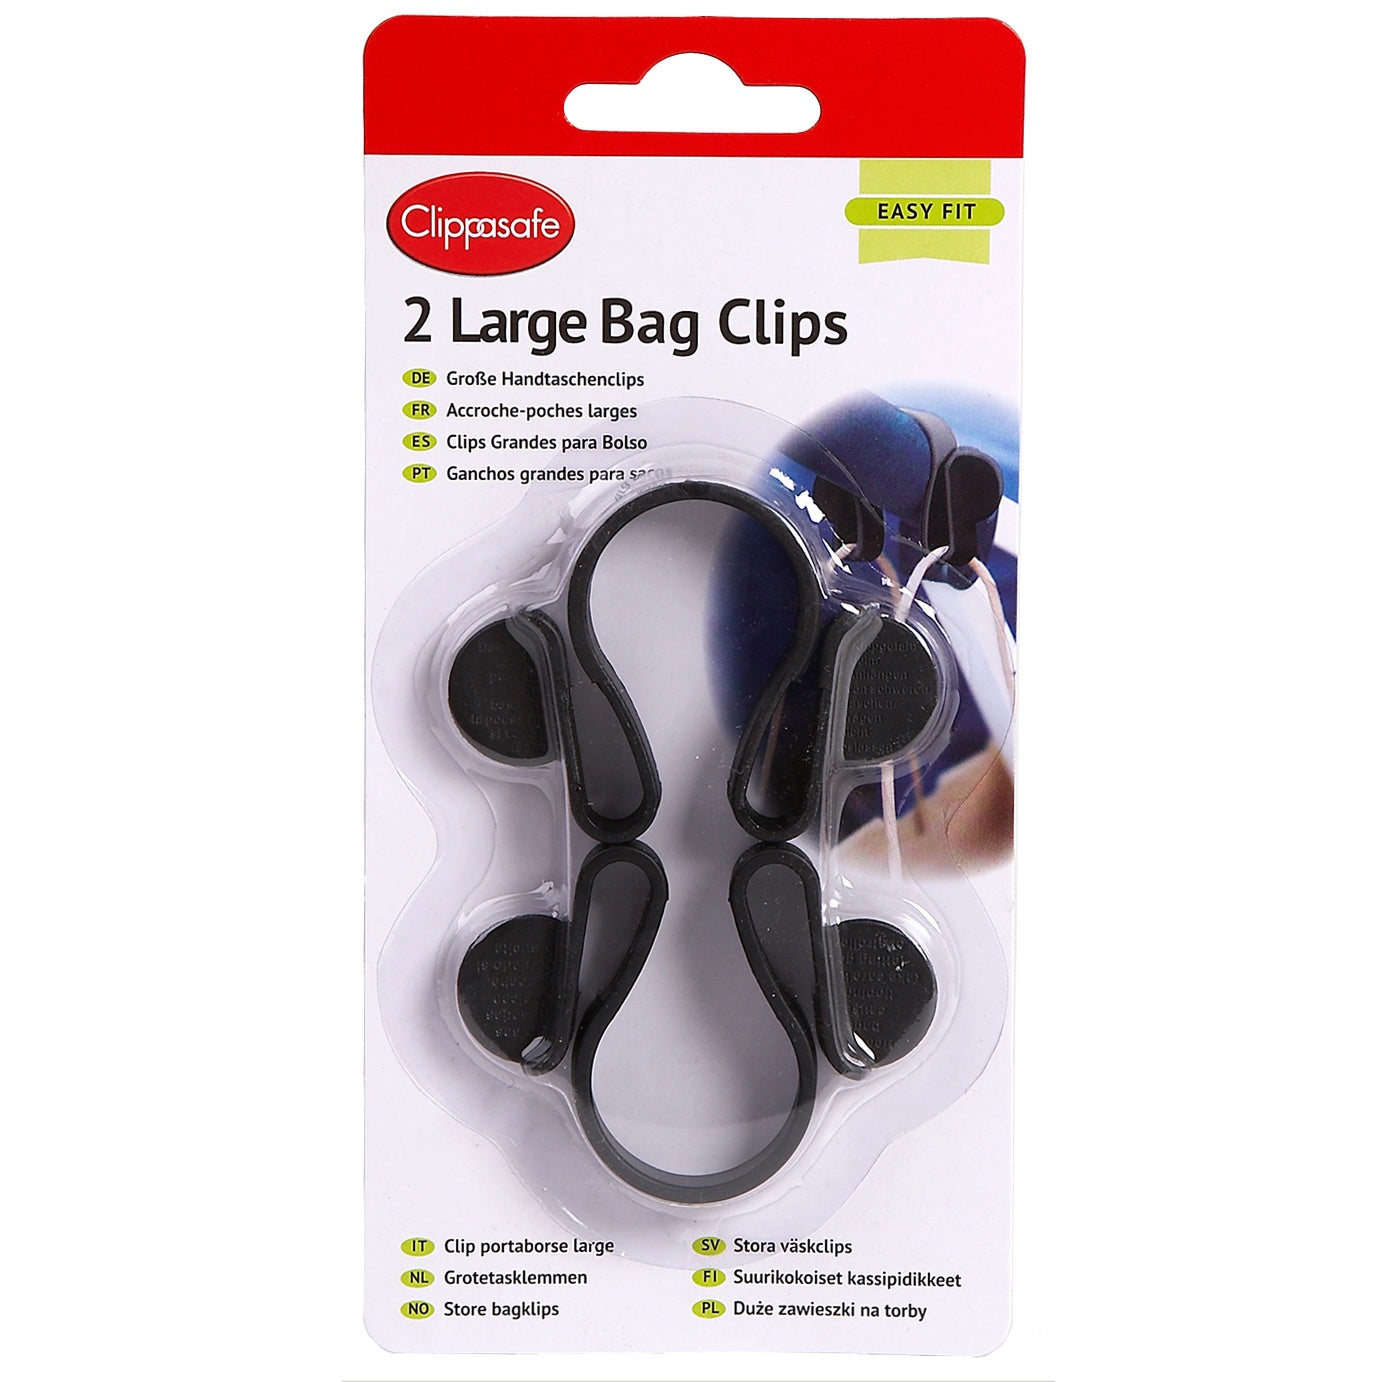 Clippasafe Large Stroller Bag Clips 2 Pack